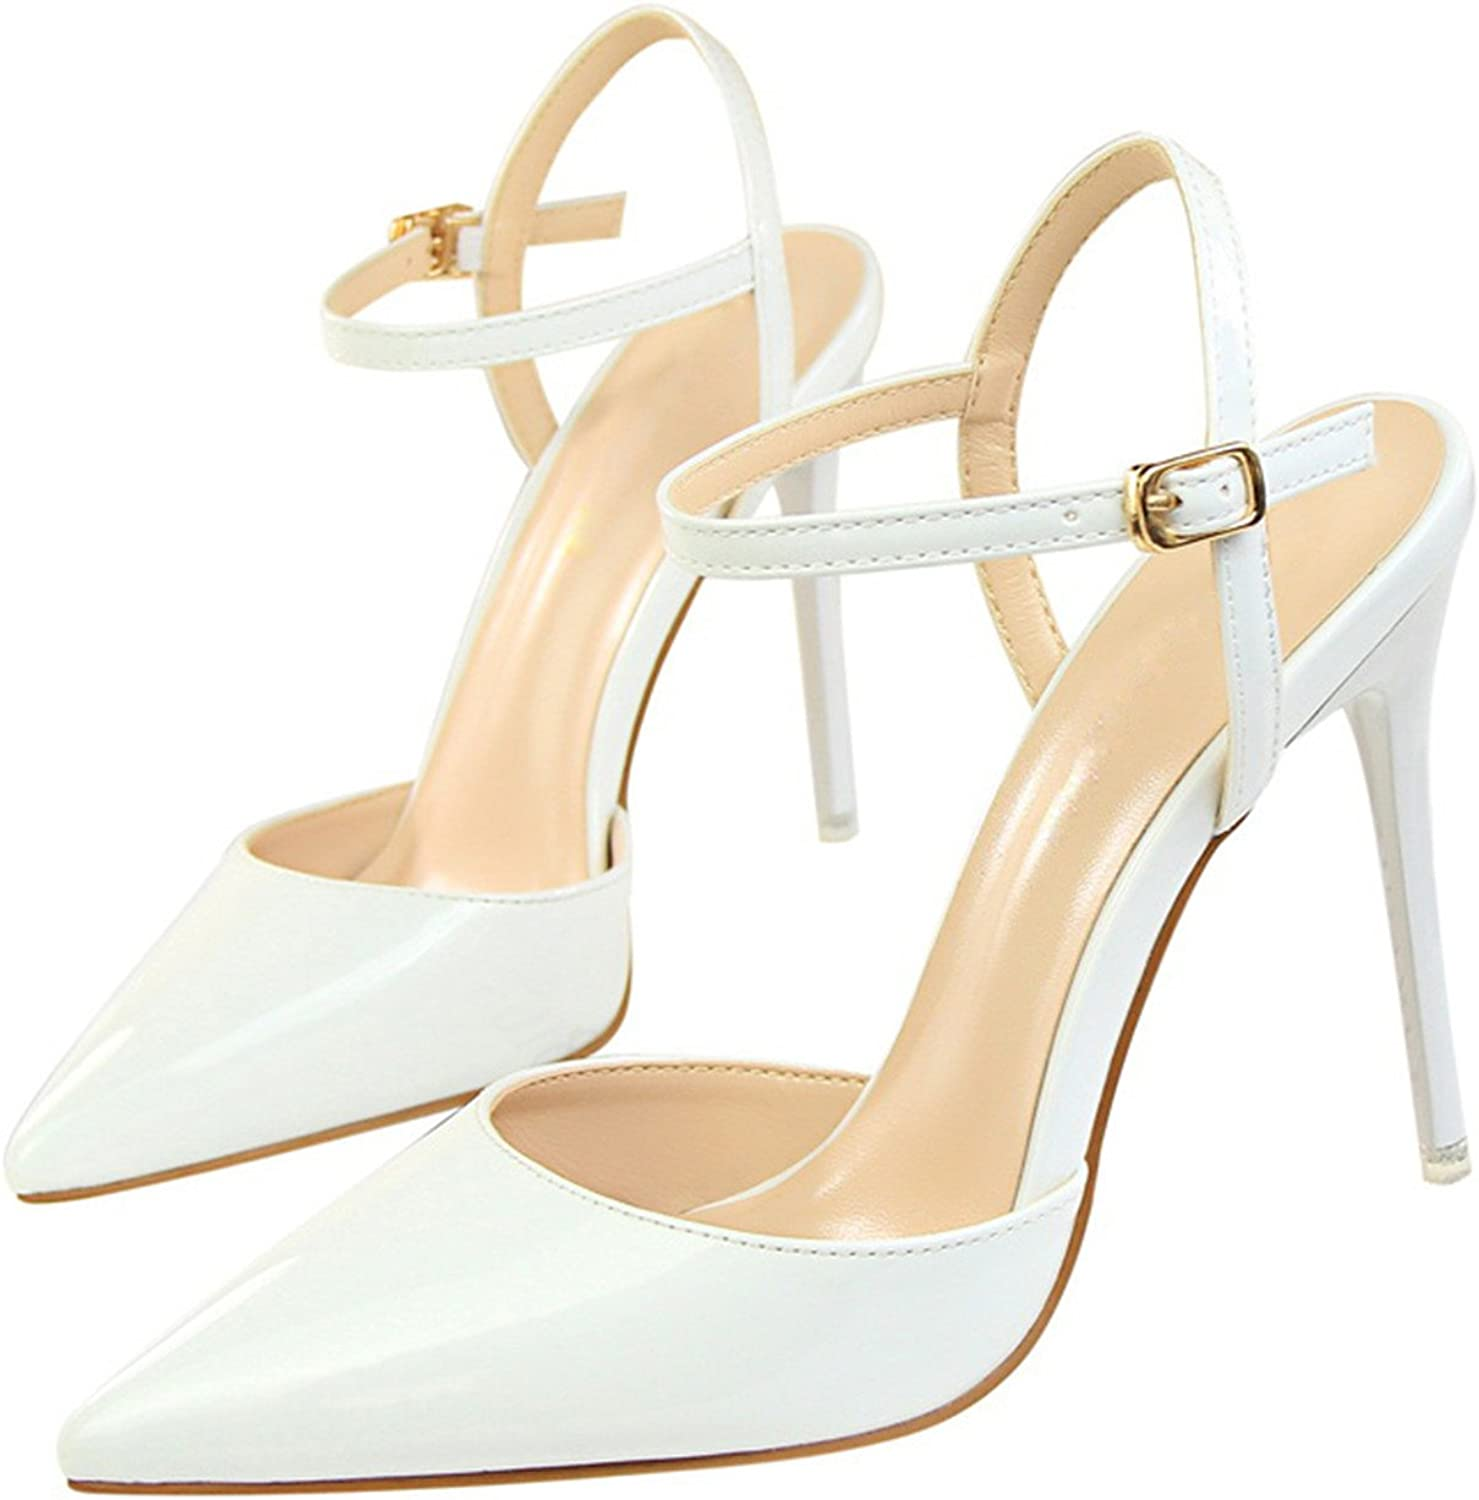 Fashion Ankle Strap shoes Woman Pointed Toe Thin Heels Women's Buckle Slingbacks Pumps high Heels White 4